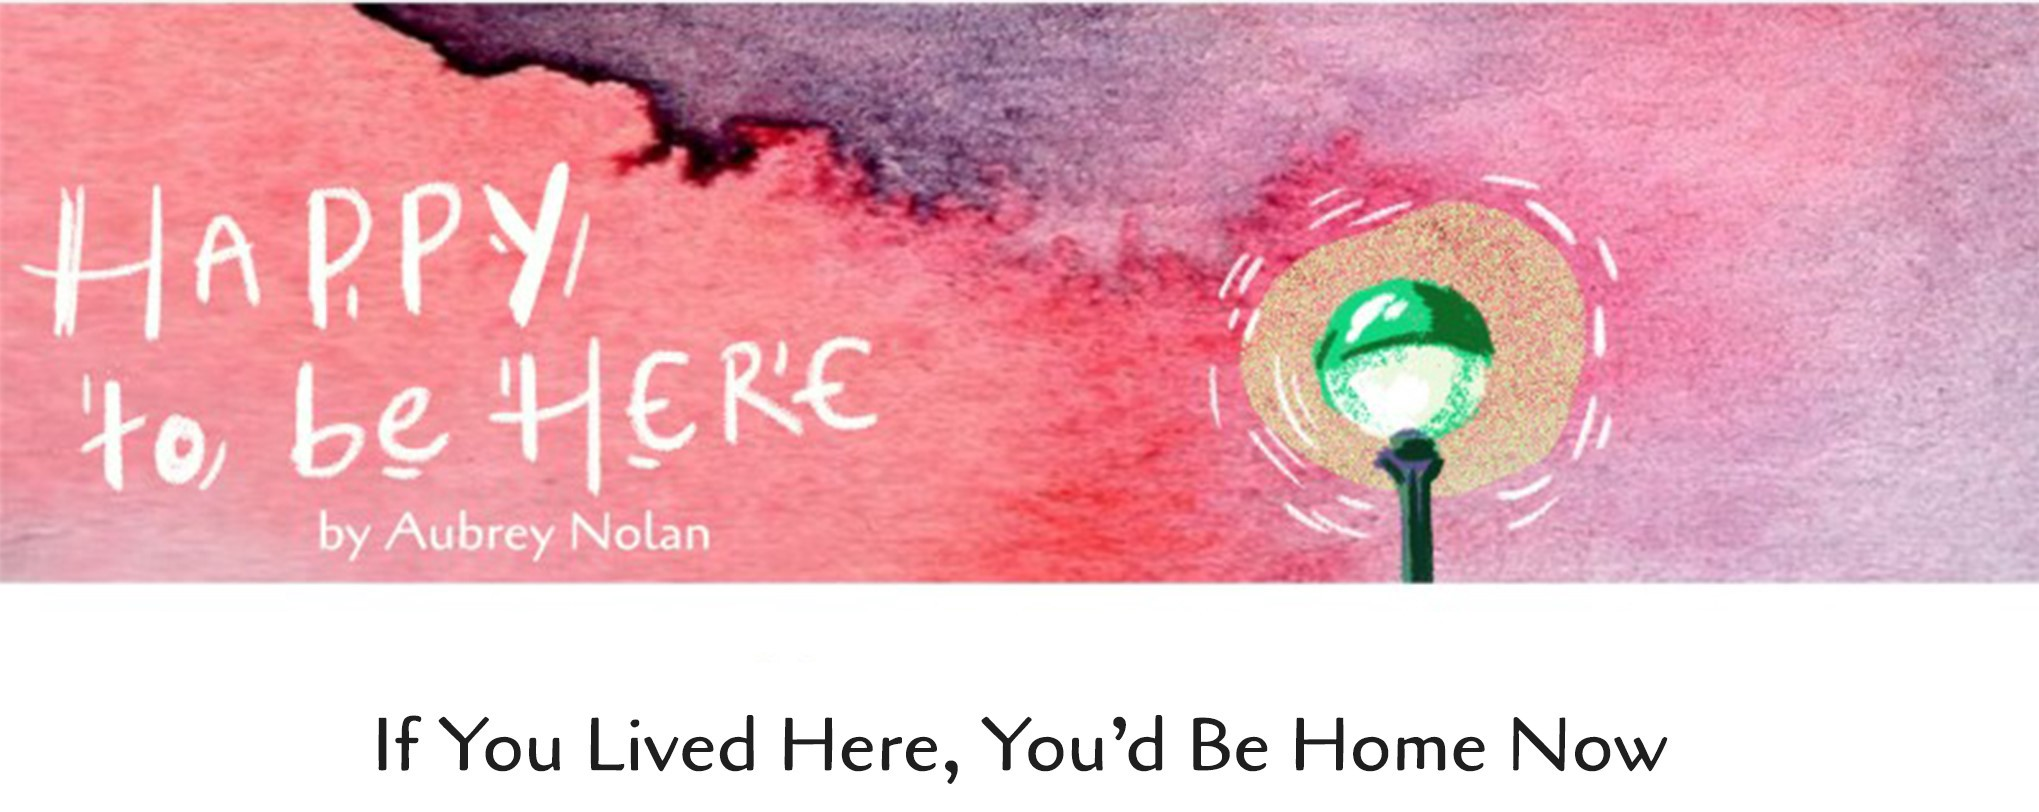 If You Lived Here Youd Be Cool By Now >> Happy To Be Here If You Lived Here You D Be Home Now